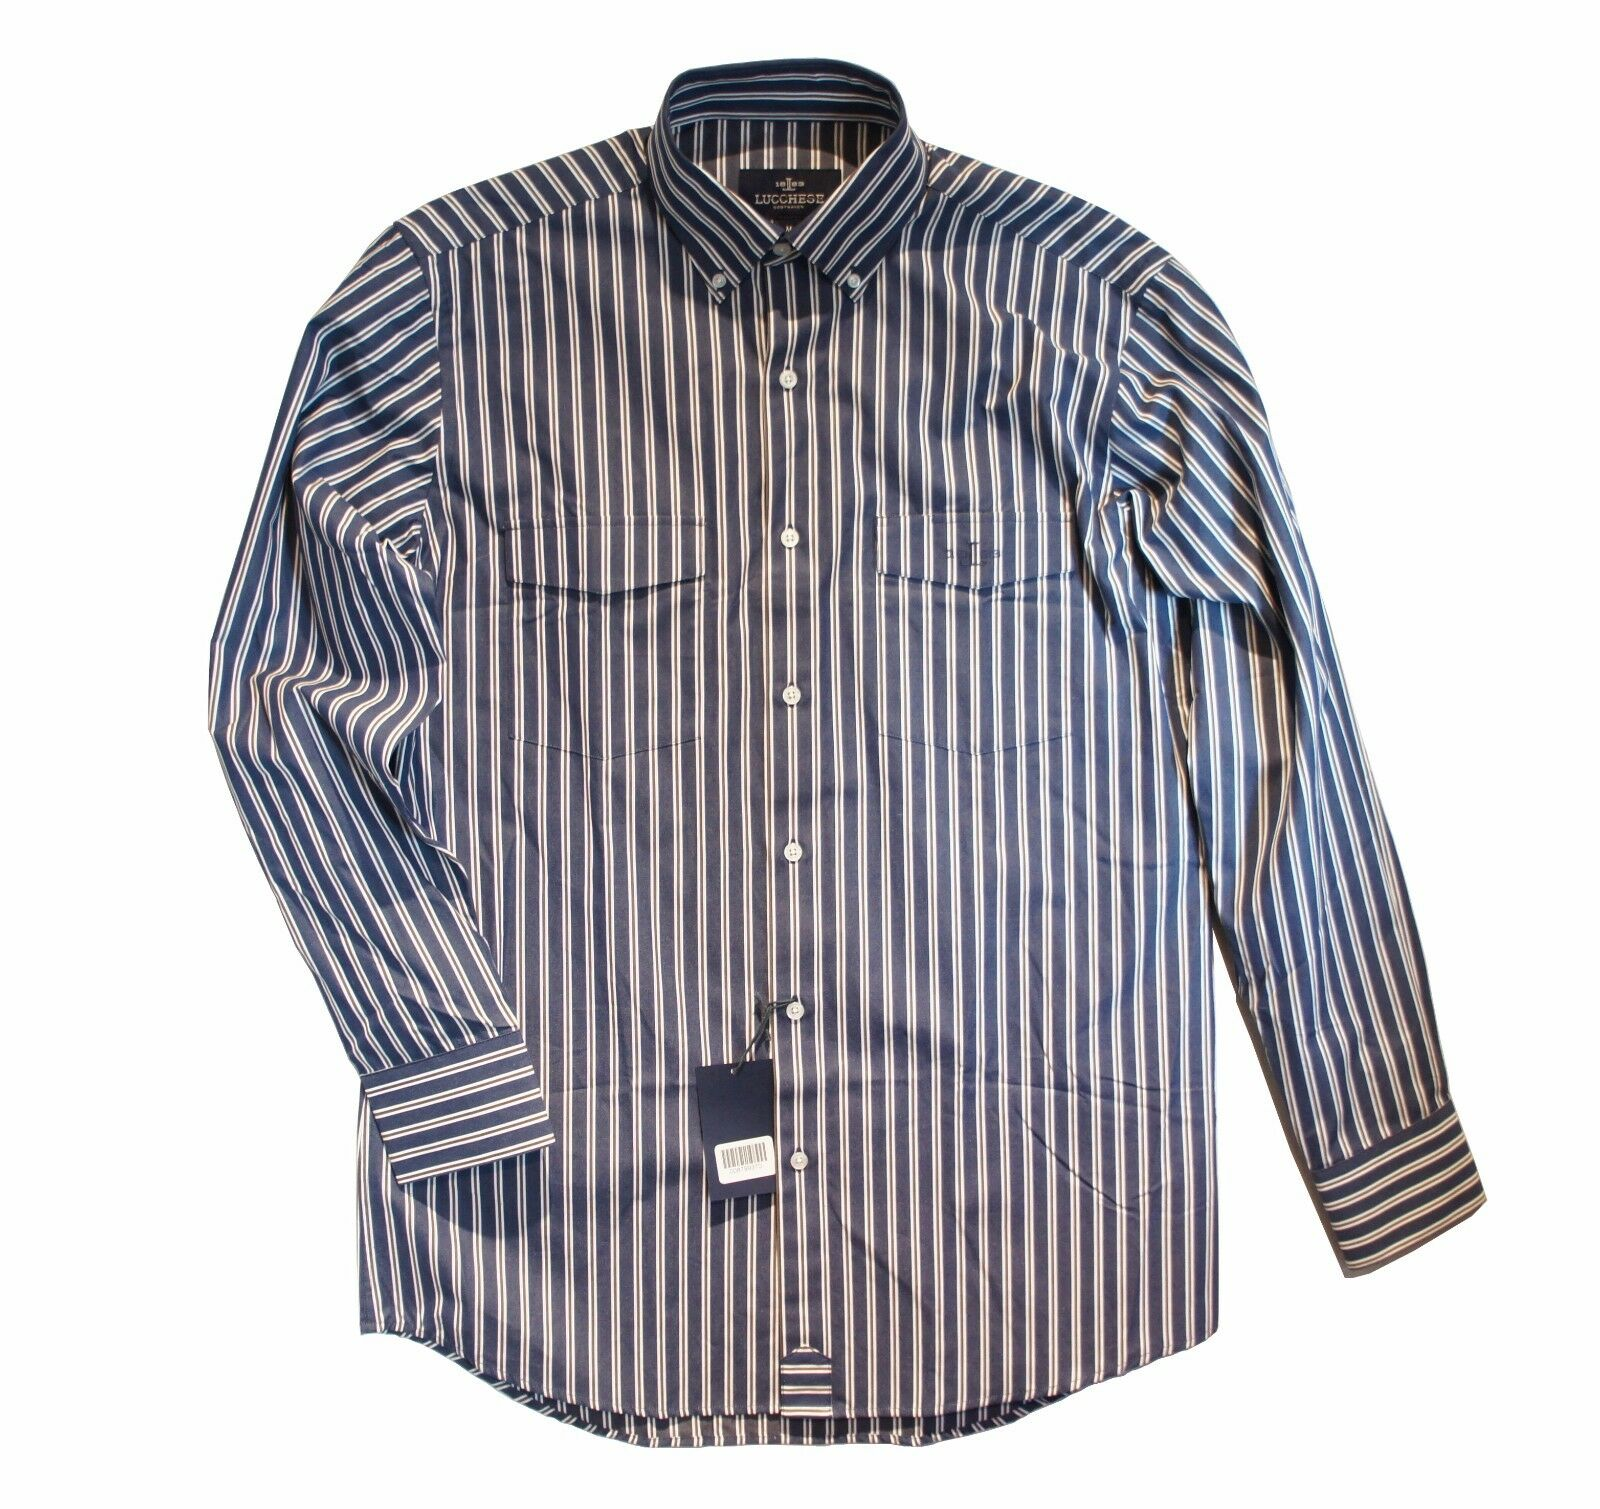 LUCCHESE Bootmaker bluee Brown White Striped Button Up 100% Cotton Shirt